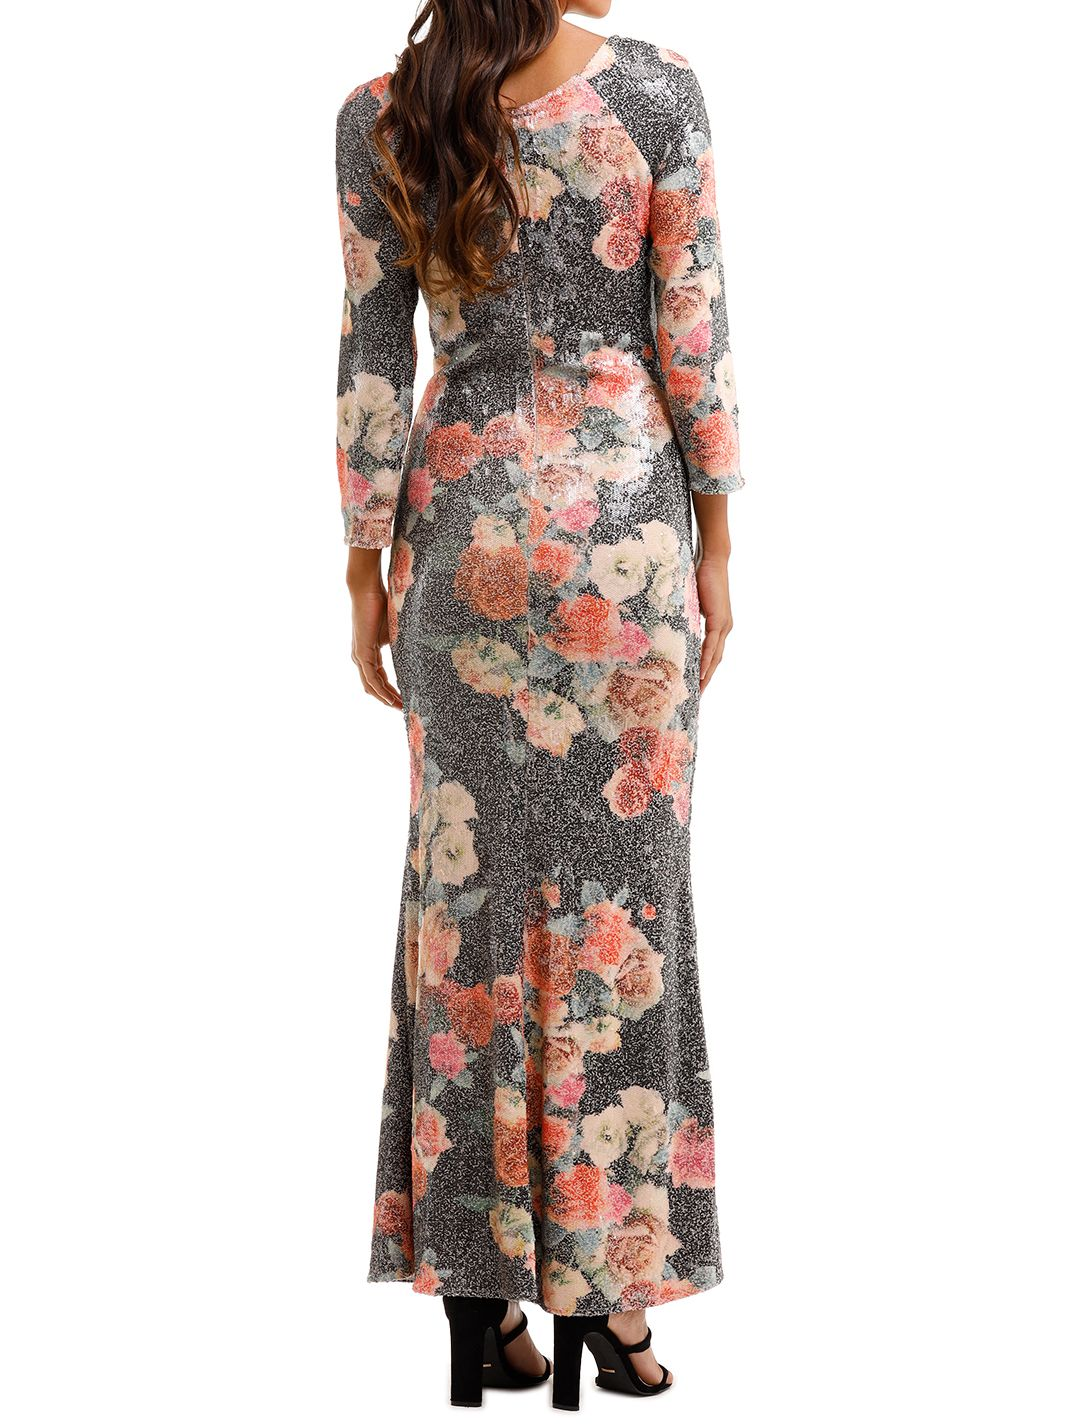 Moss and SpyMatisse Gown Floral Multi